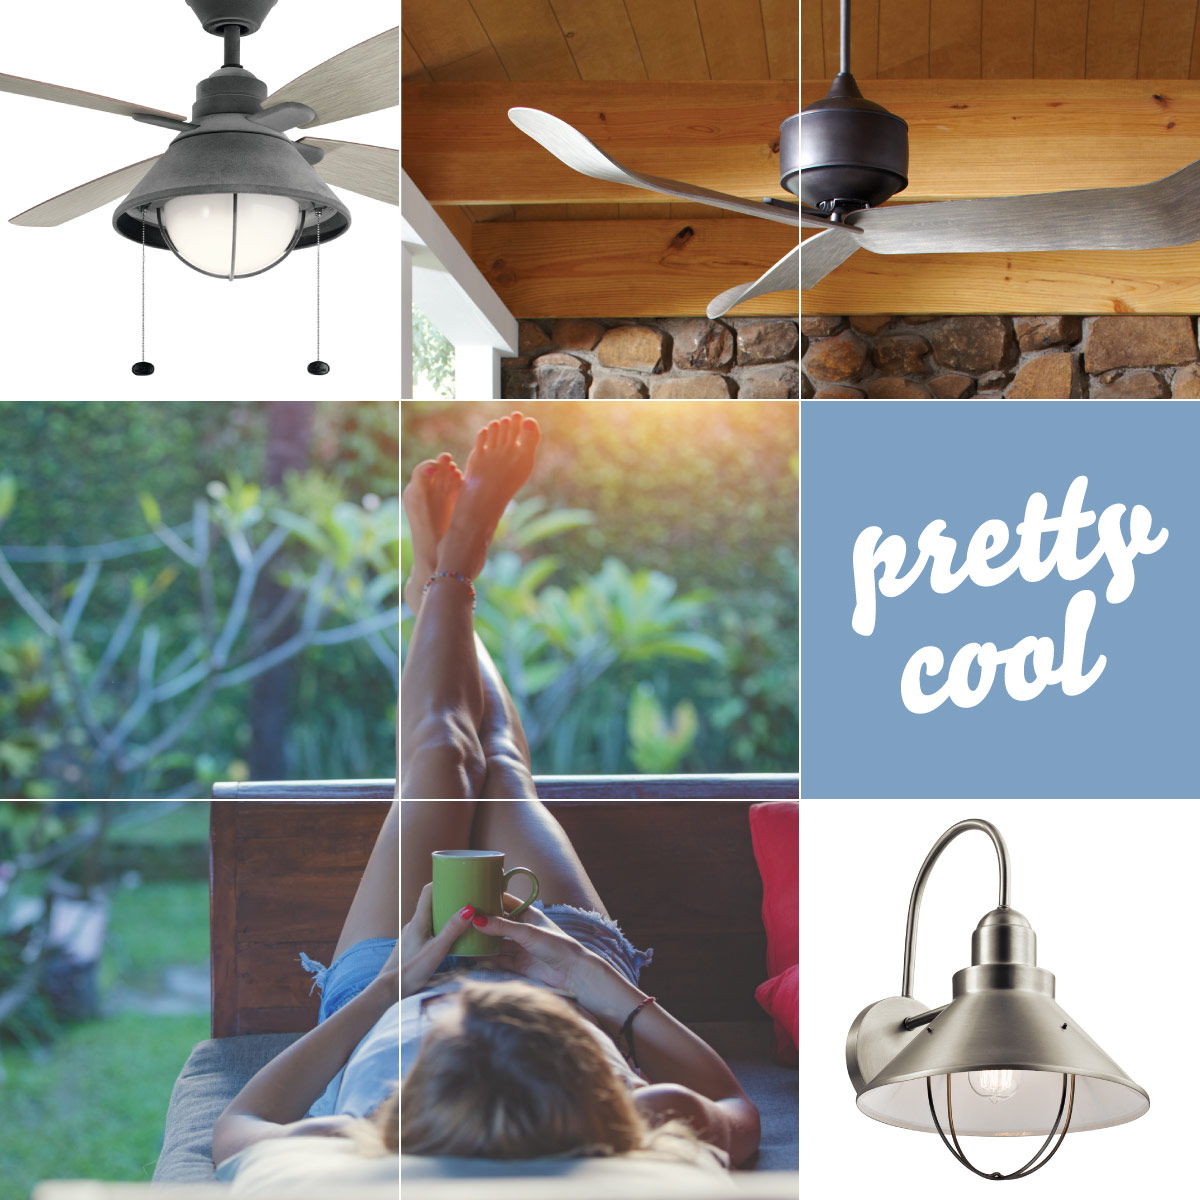 Ceiling fans help keep you cool in these hot months